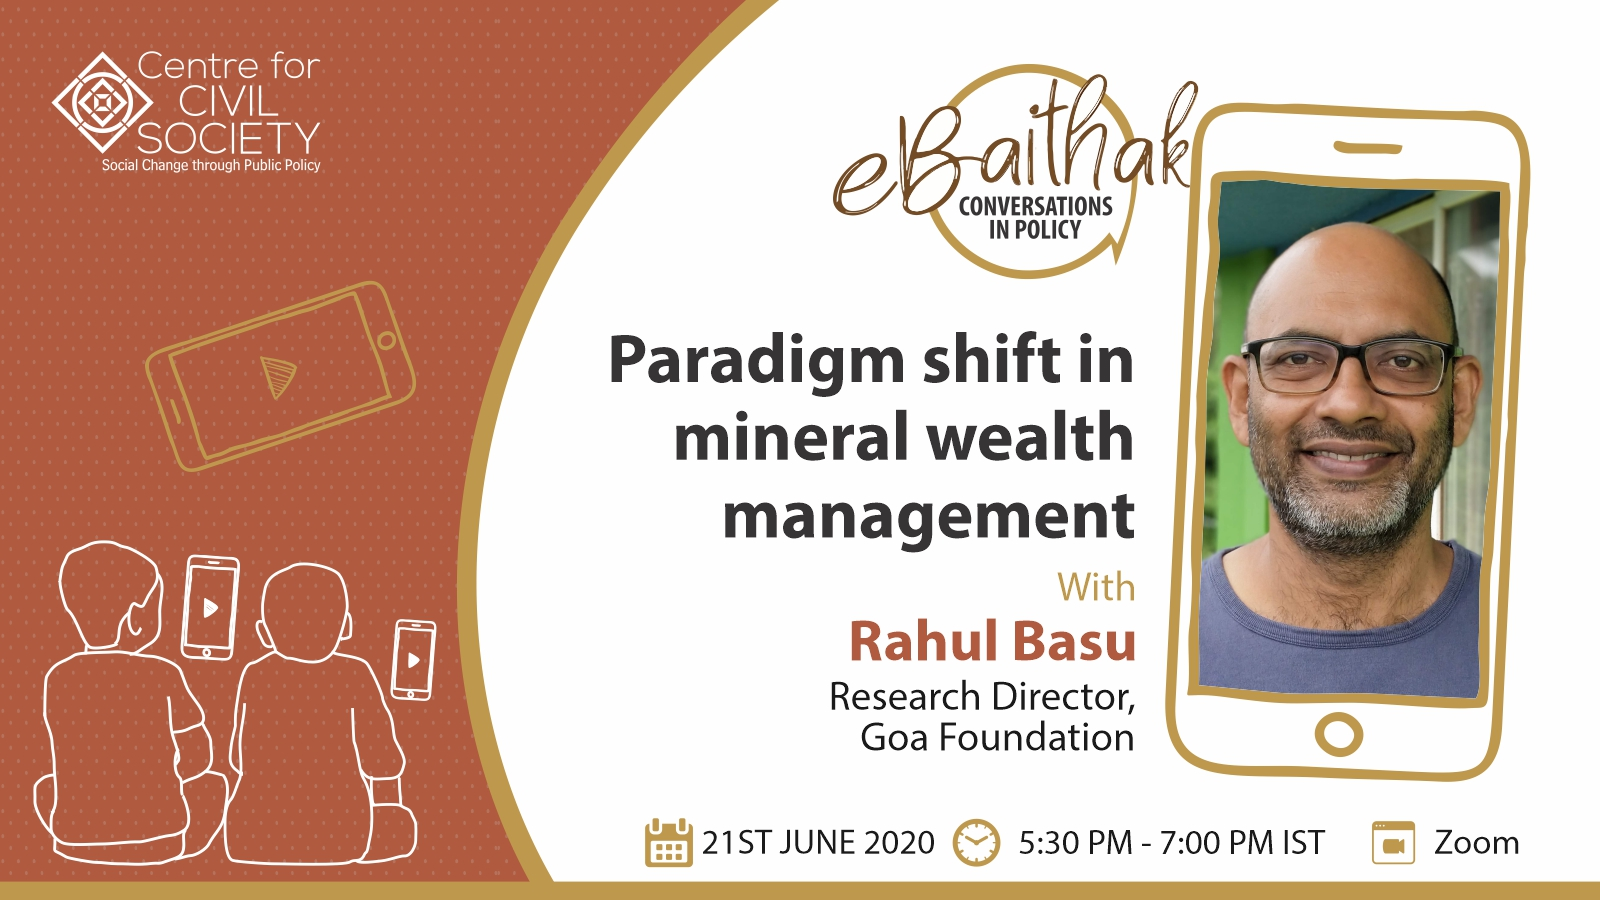 Webinar on A Paradigm Shift in Mineral Wealth Management by CCS